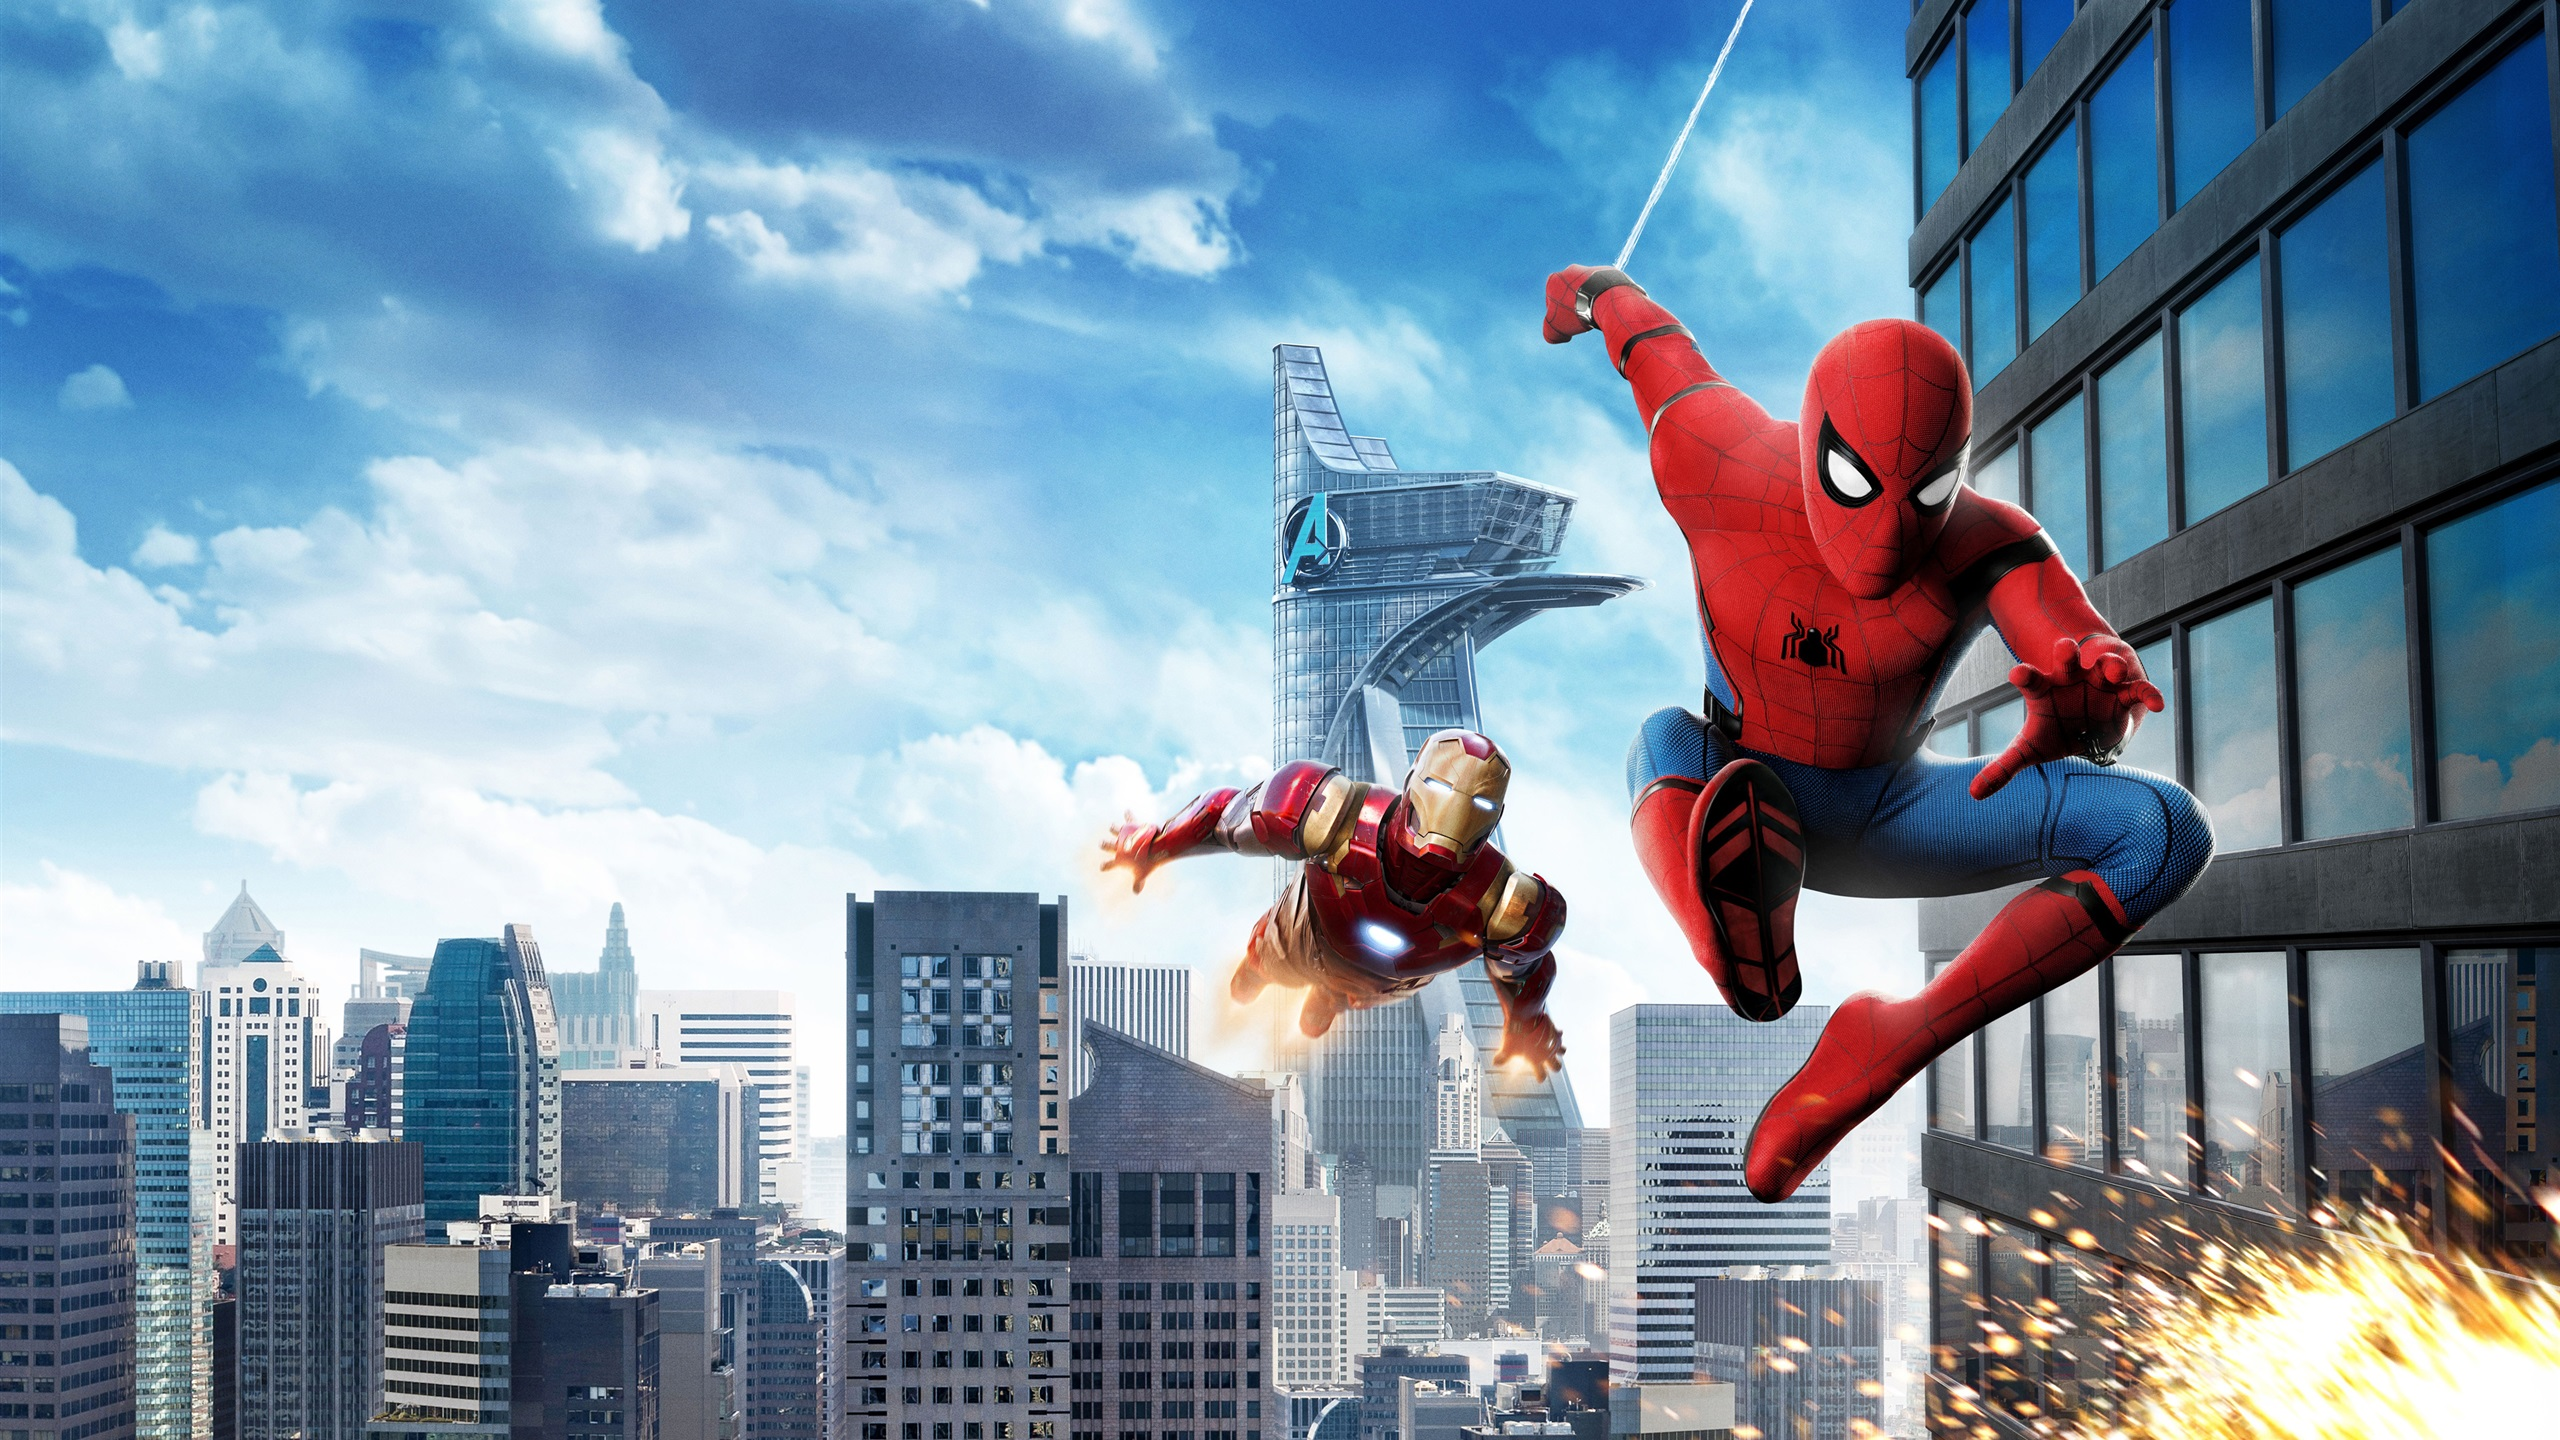 Wallpaper Spider Man Homecoming Iron Man 3840x2160 Uhd 4k Picture